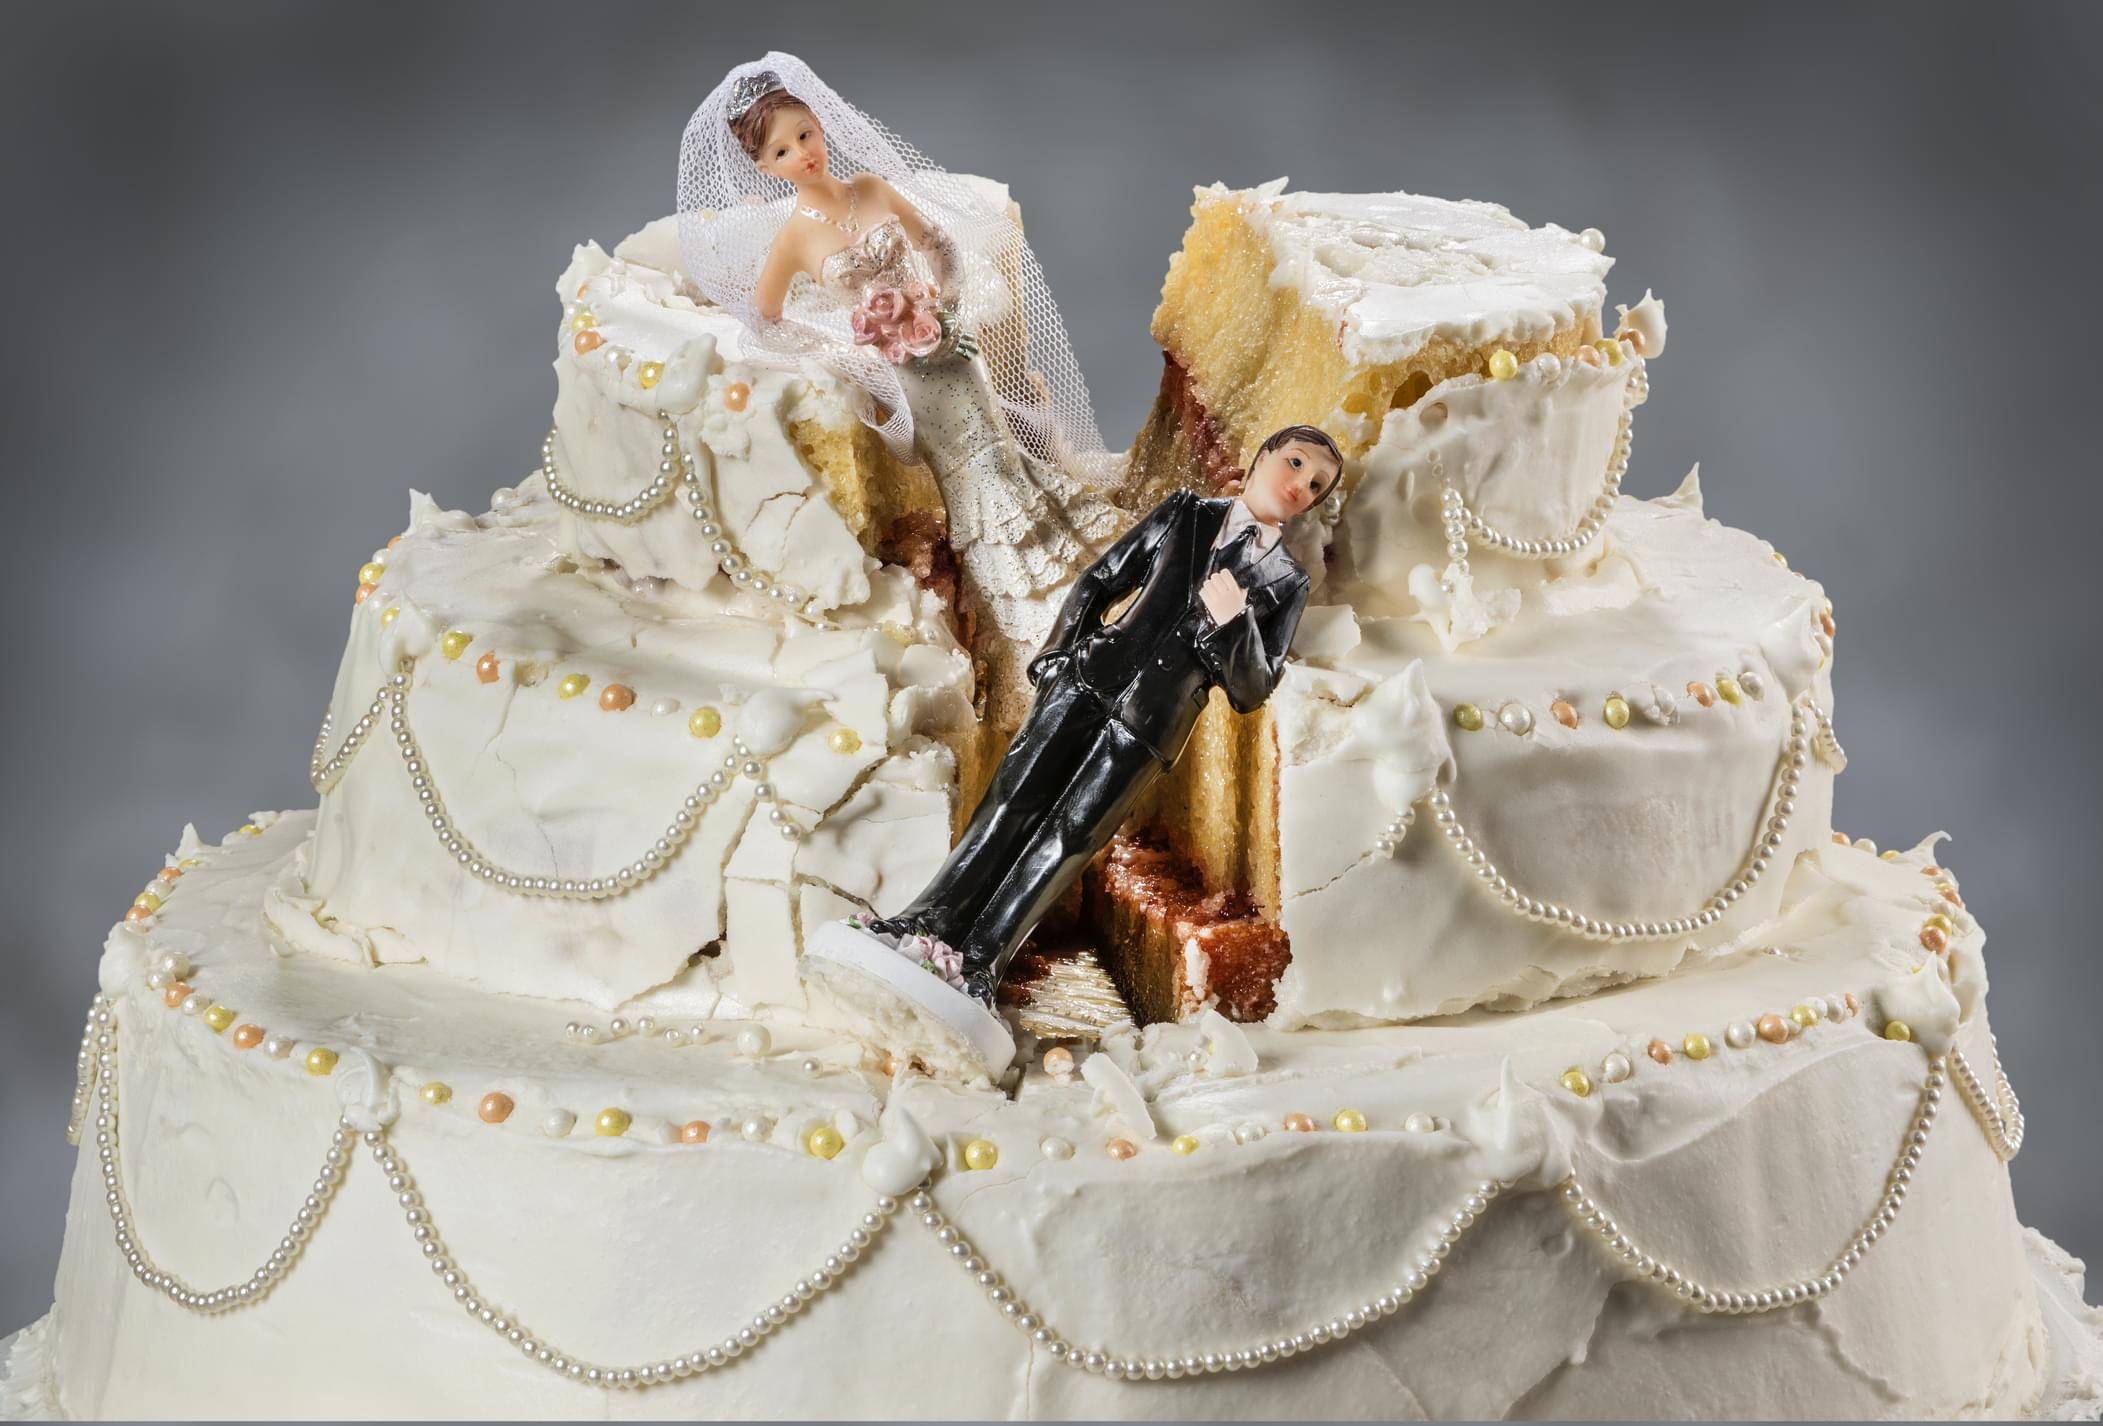 Melissa in the Morning: Unhappy Couples can Survive